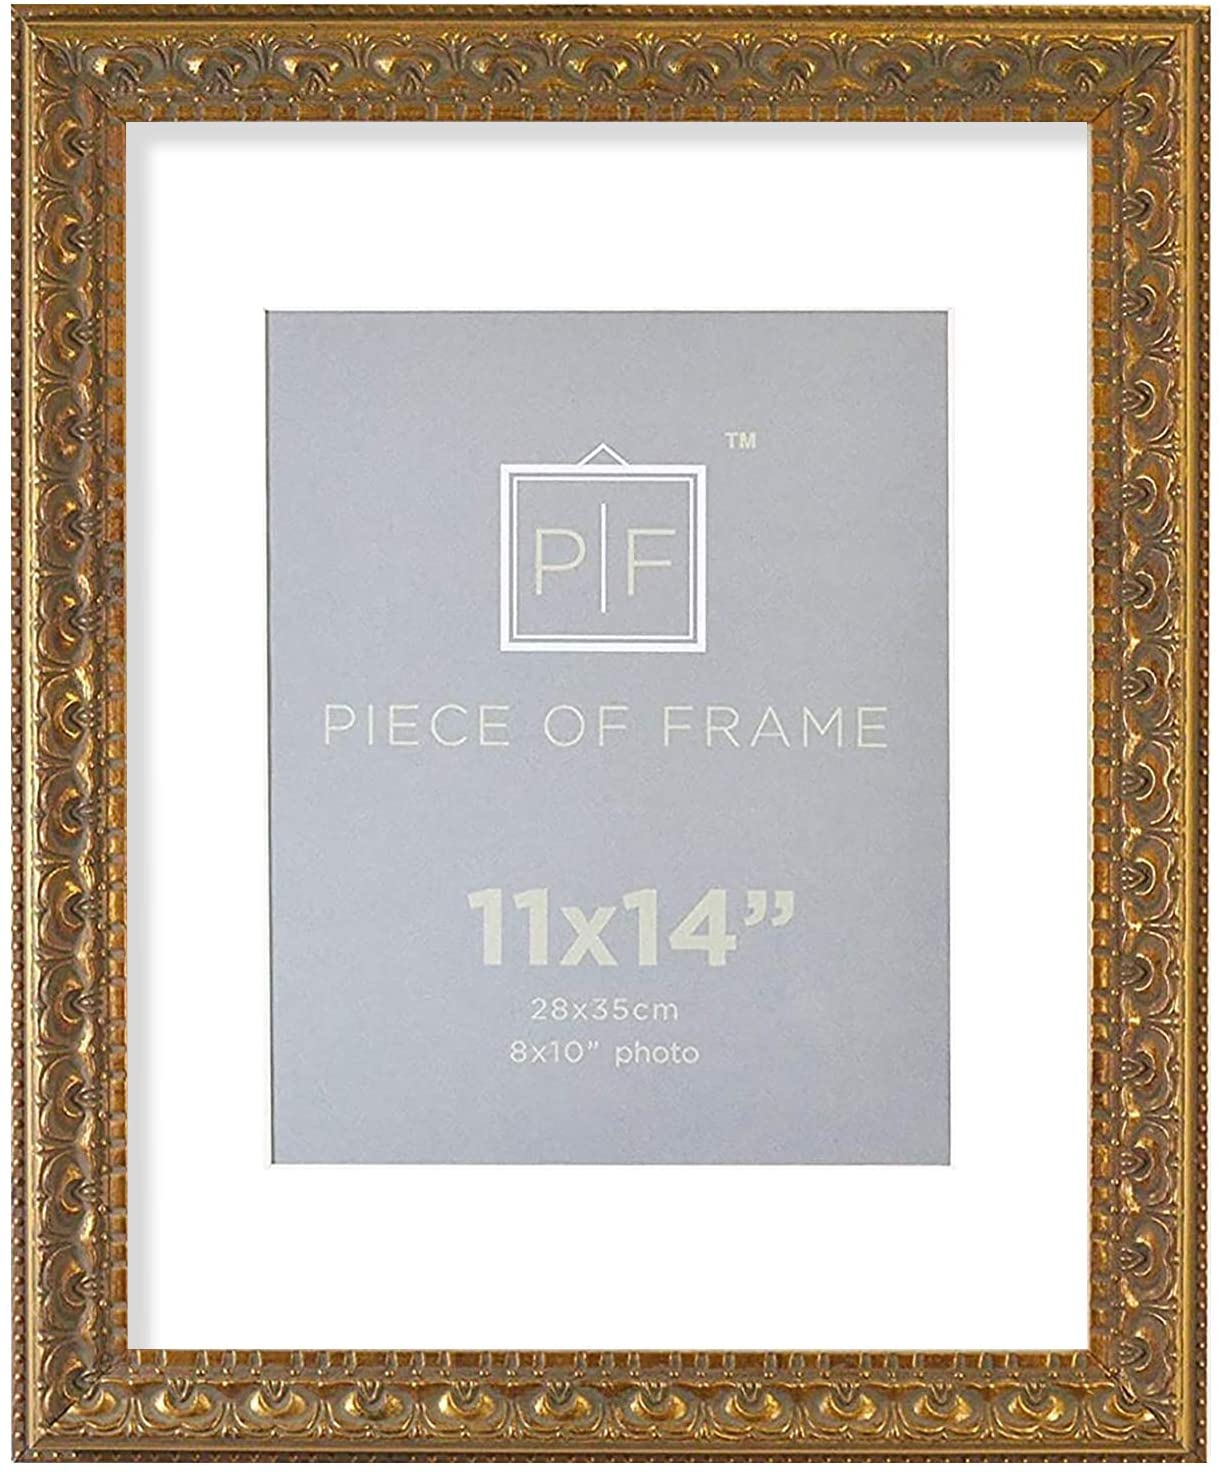 Golden State Art, 11x14 Ornate Finish Photo Frame, with White Mat for 8x10 Picture & Real Glass, Color: Bronze